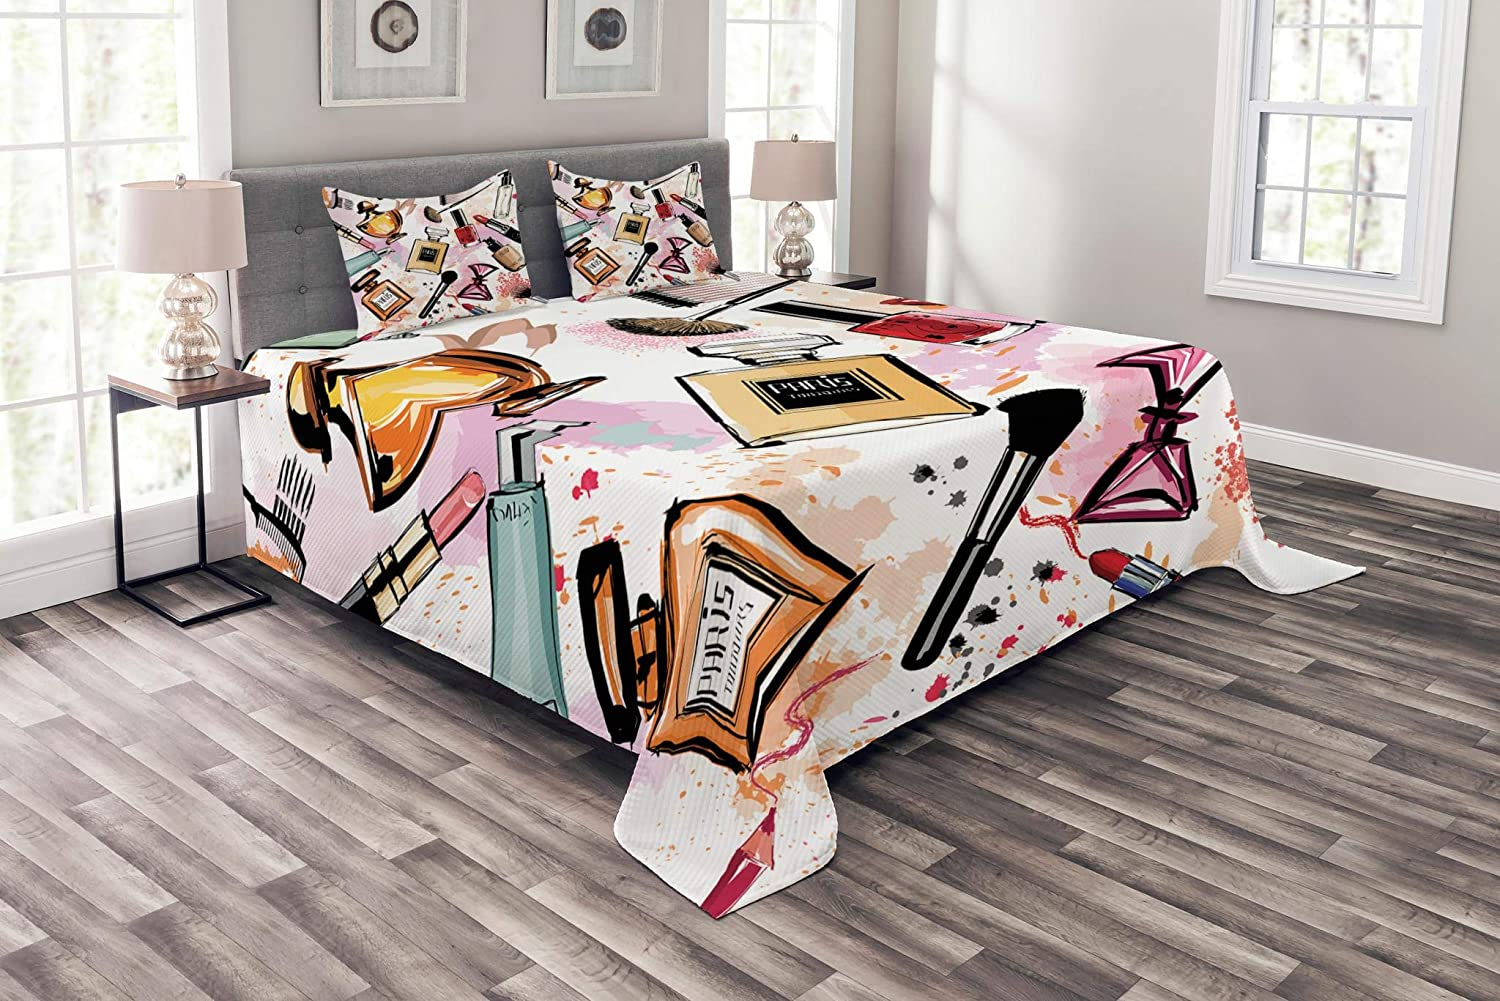 Ambesonne Fashion Bedspread, Cosmetic and Makeup Theme Pattern with Perfume Lipstick Nail Polish Brush Modern, Decorative Quilted 3 Piece Coverlet Set with 2 Pillow Shams, Queen Size, Coral White